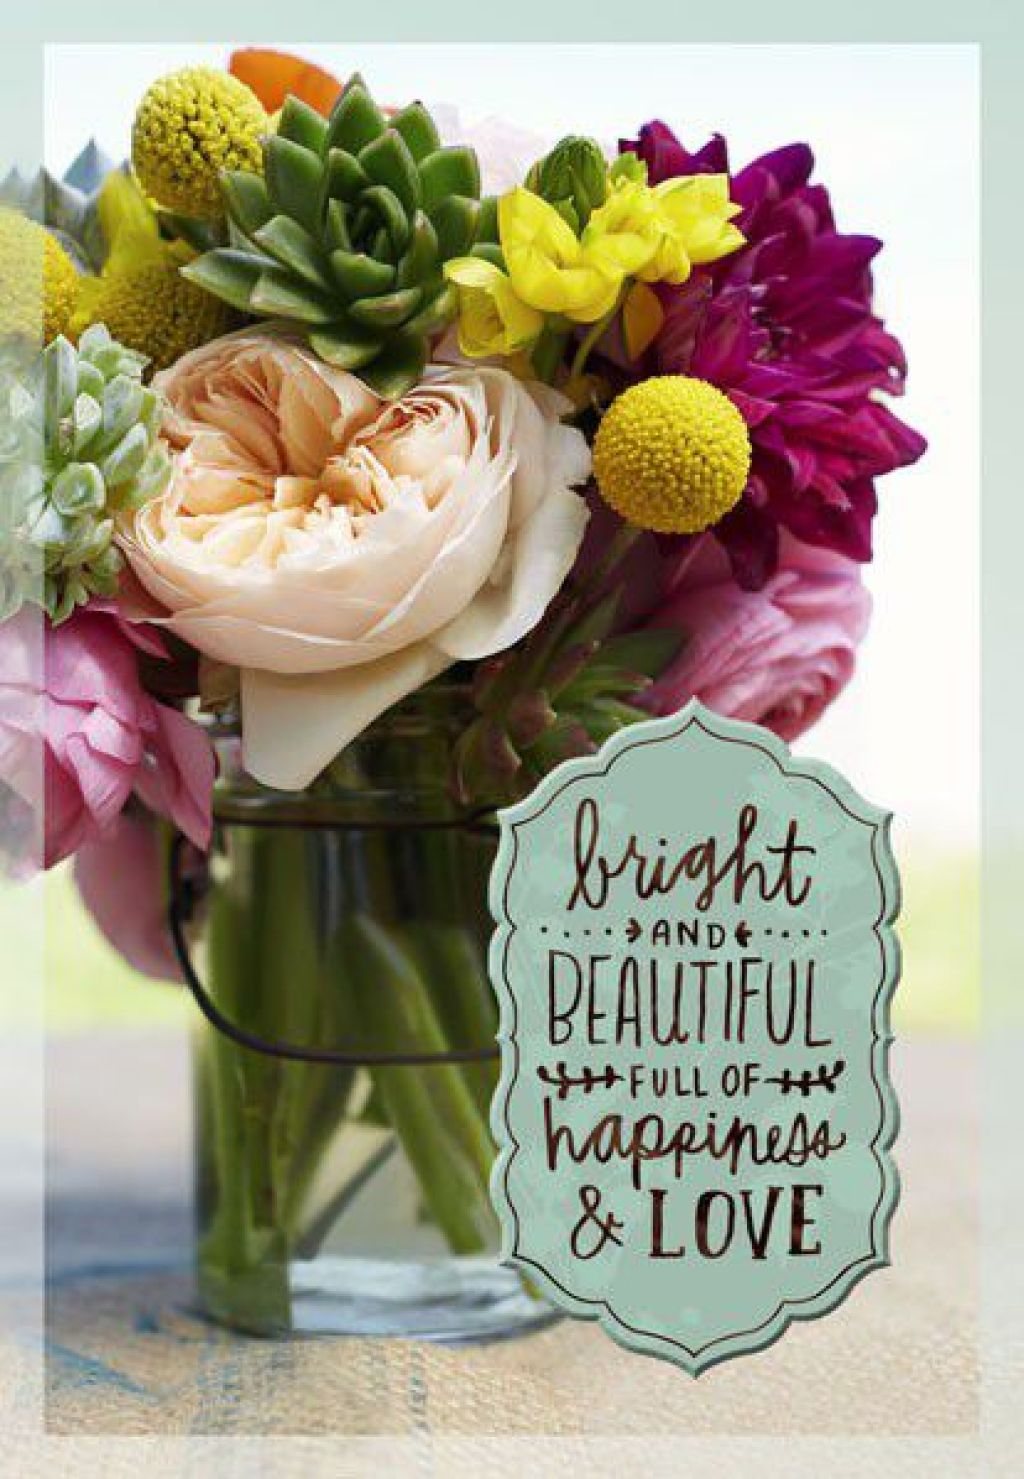 Beautiful flowers images for birthday walljdi beautiful flower images for birthday daily health izmirmasajfo